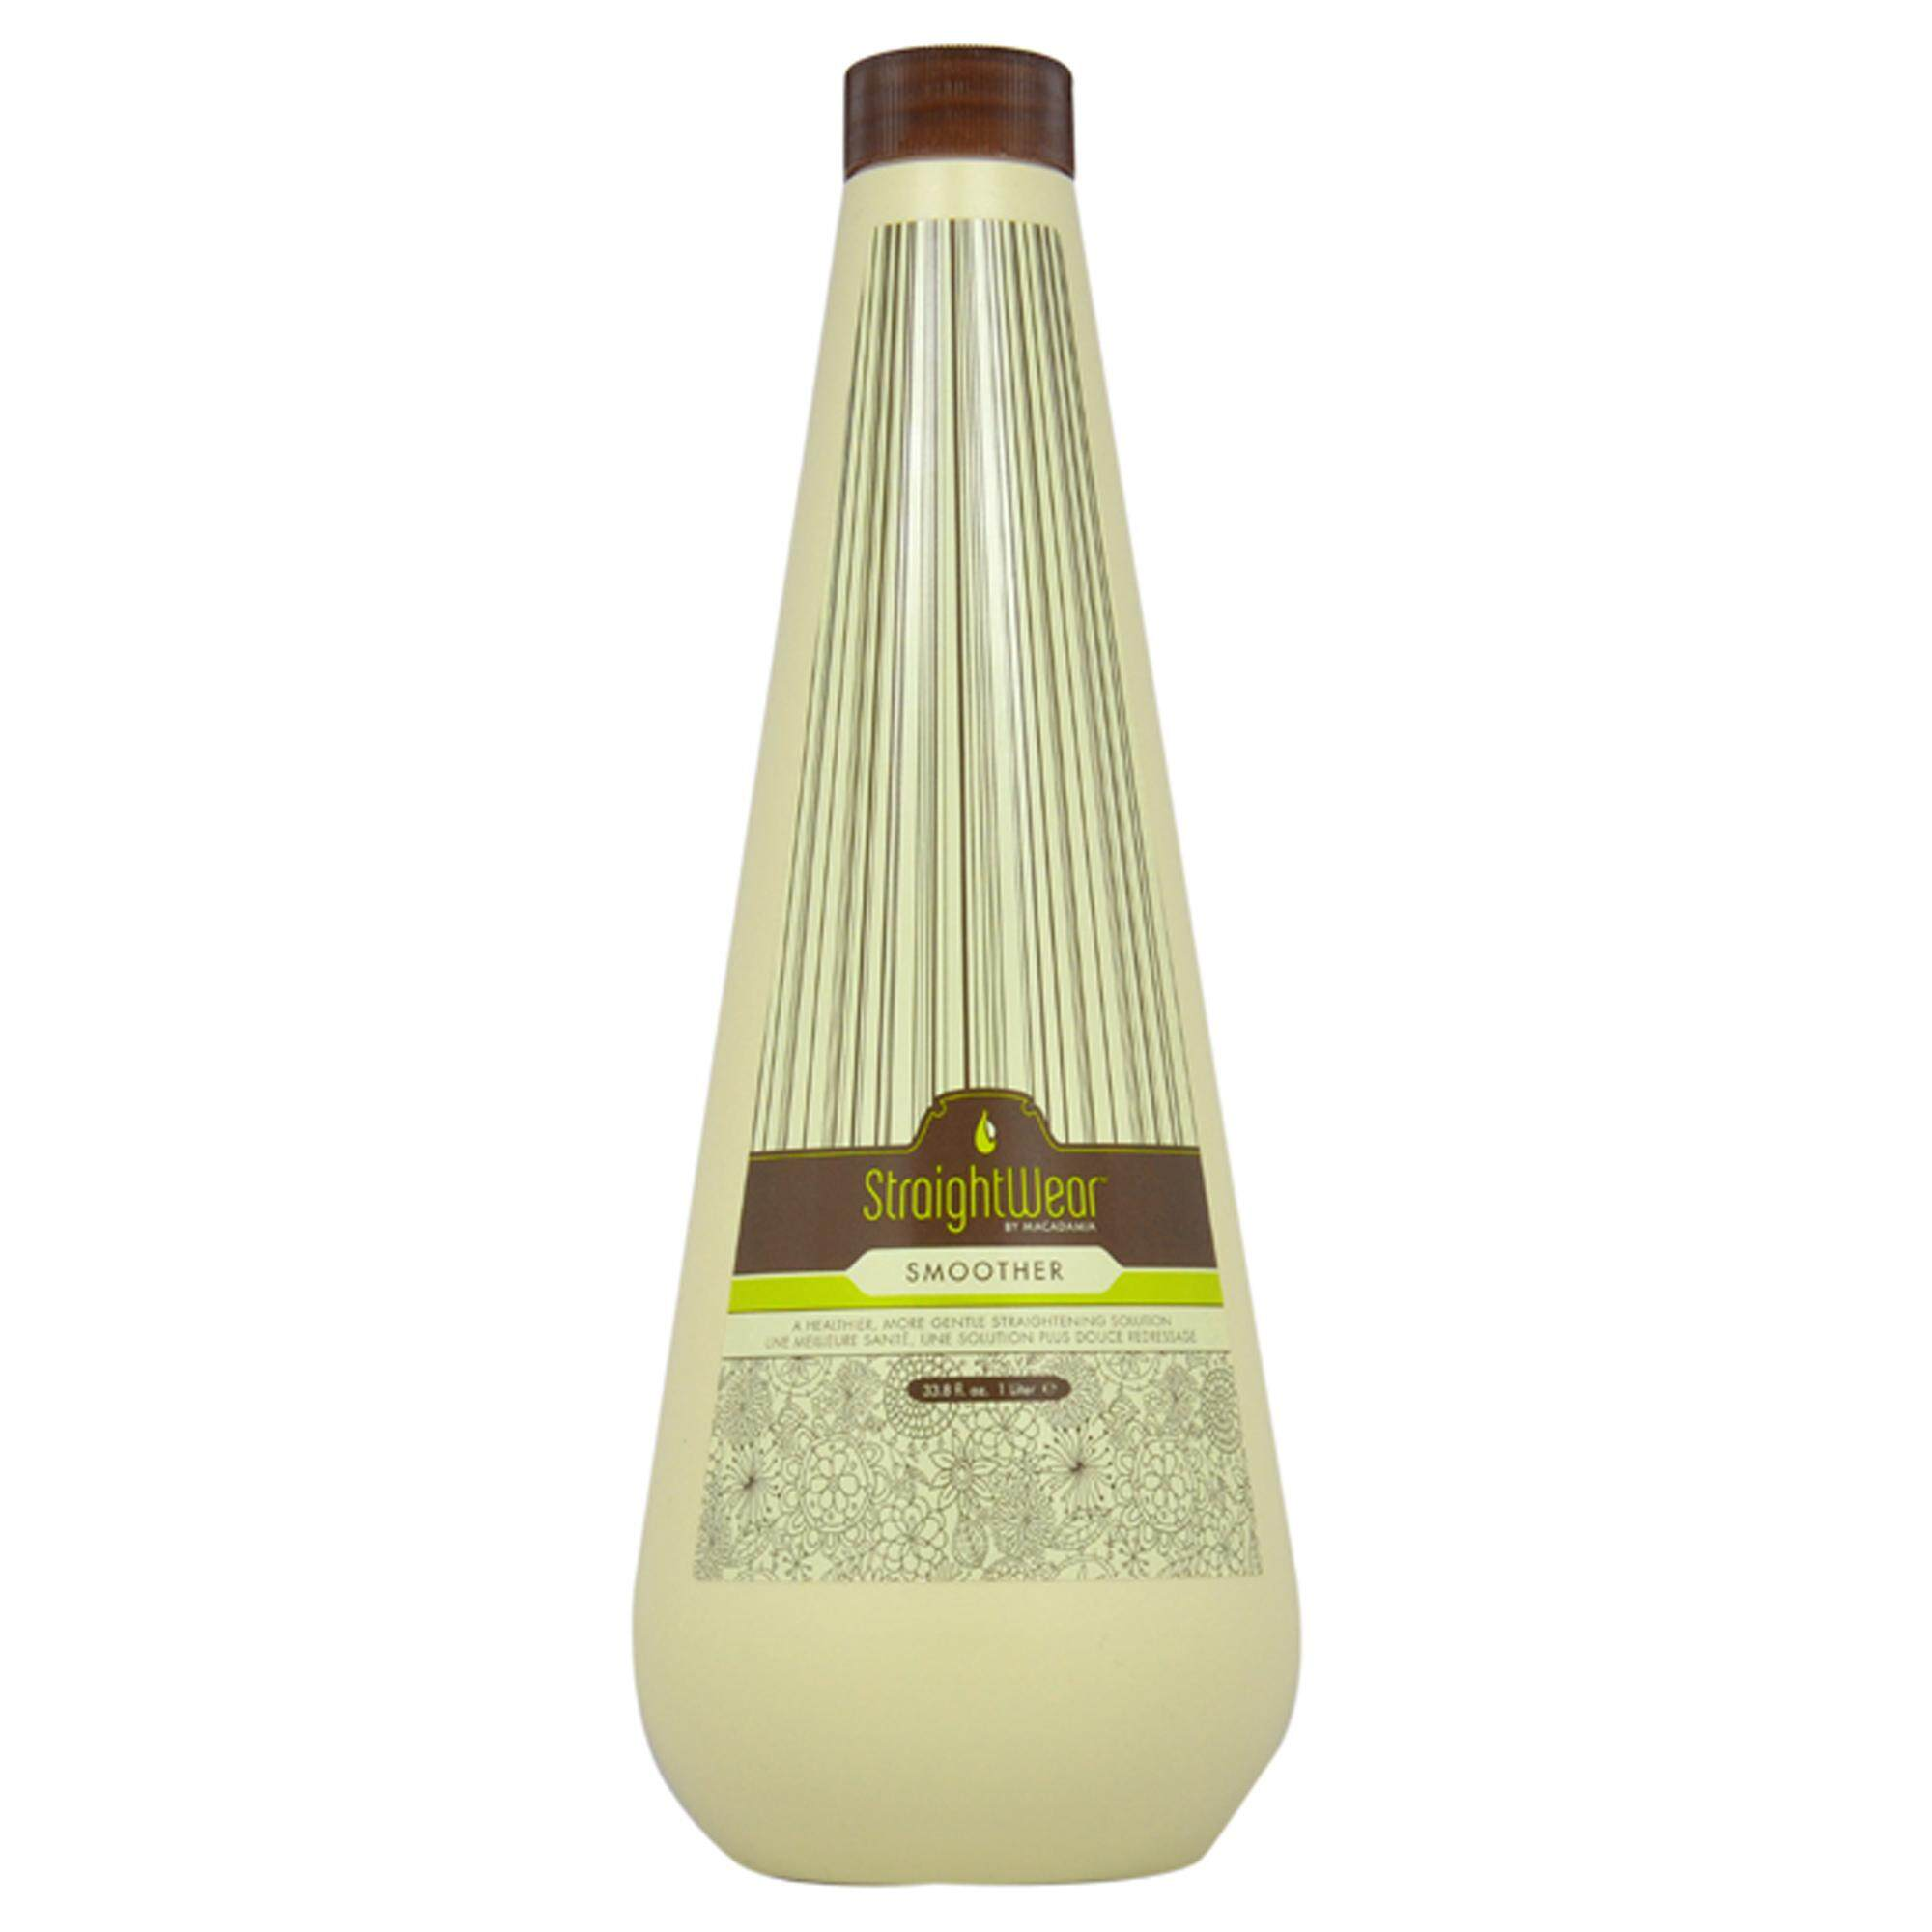 c3cfd0448d1 Macadamia Natural Oil Straightwear Smoother Straightening Solution - 33.8  oz Smoother